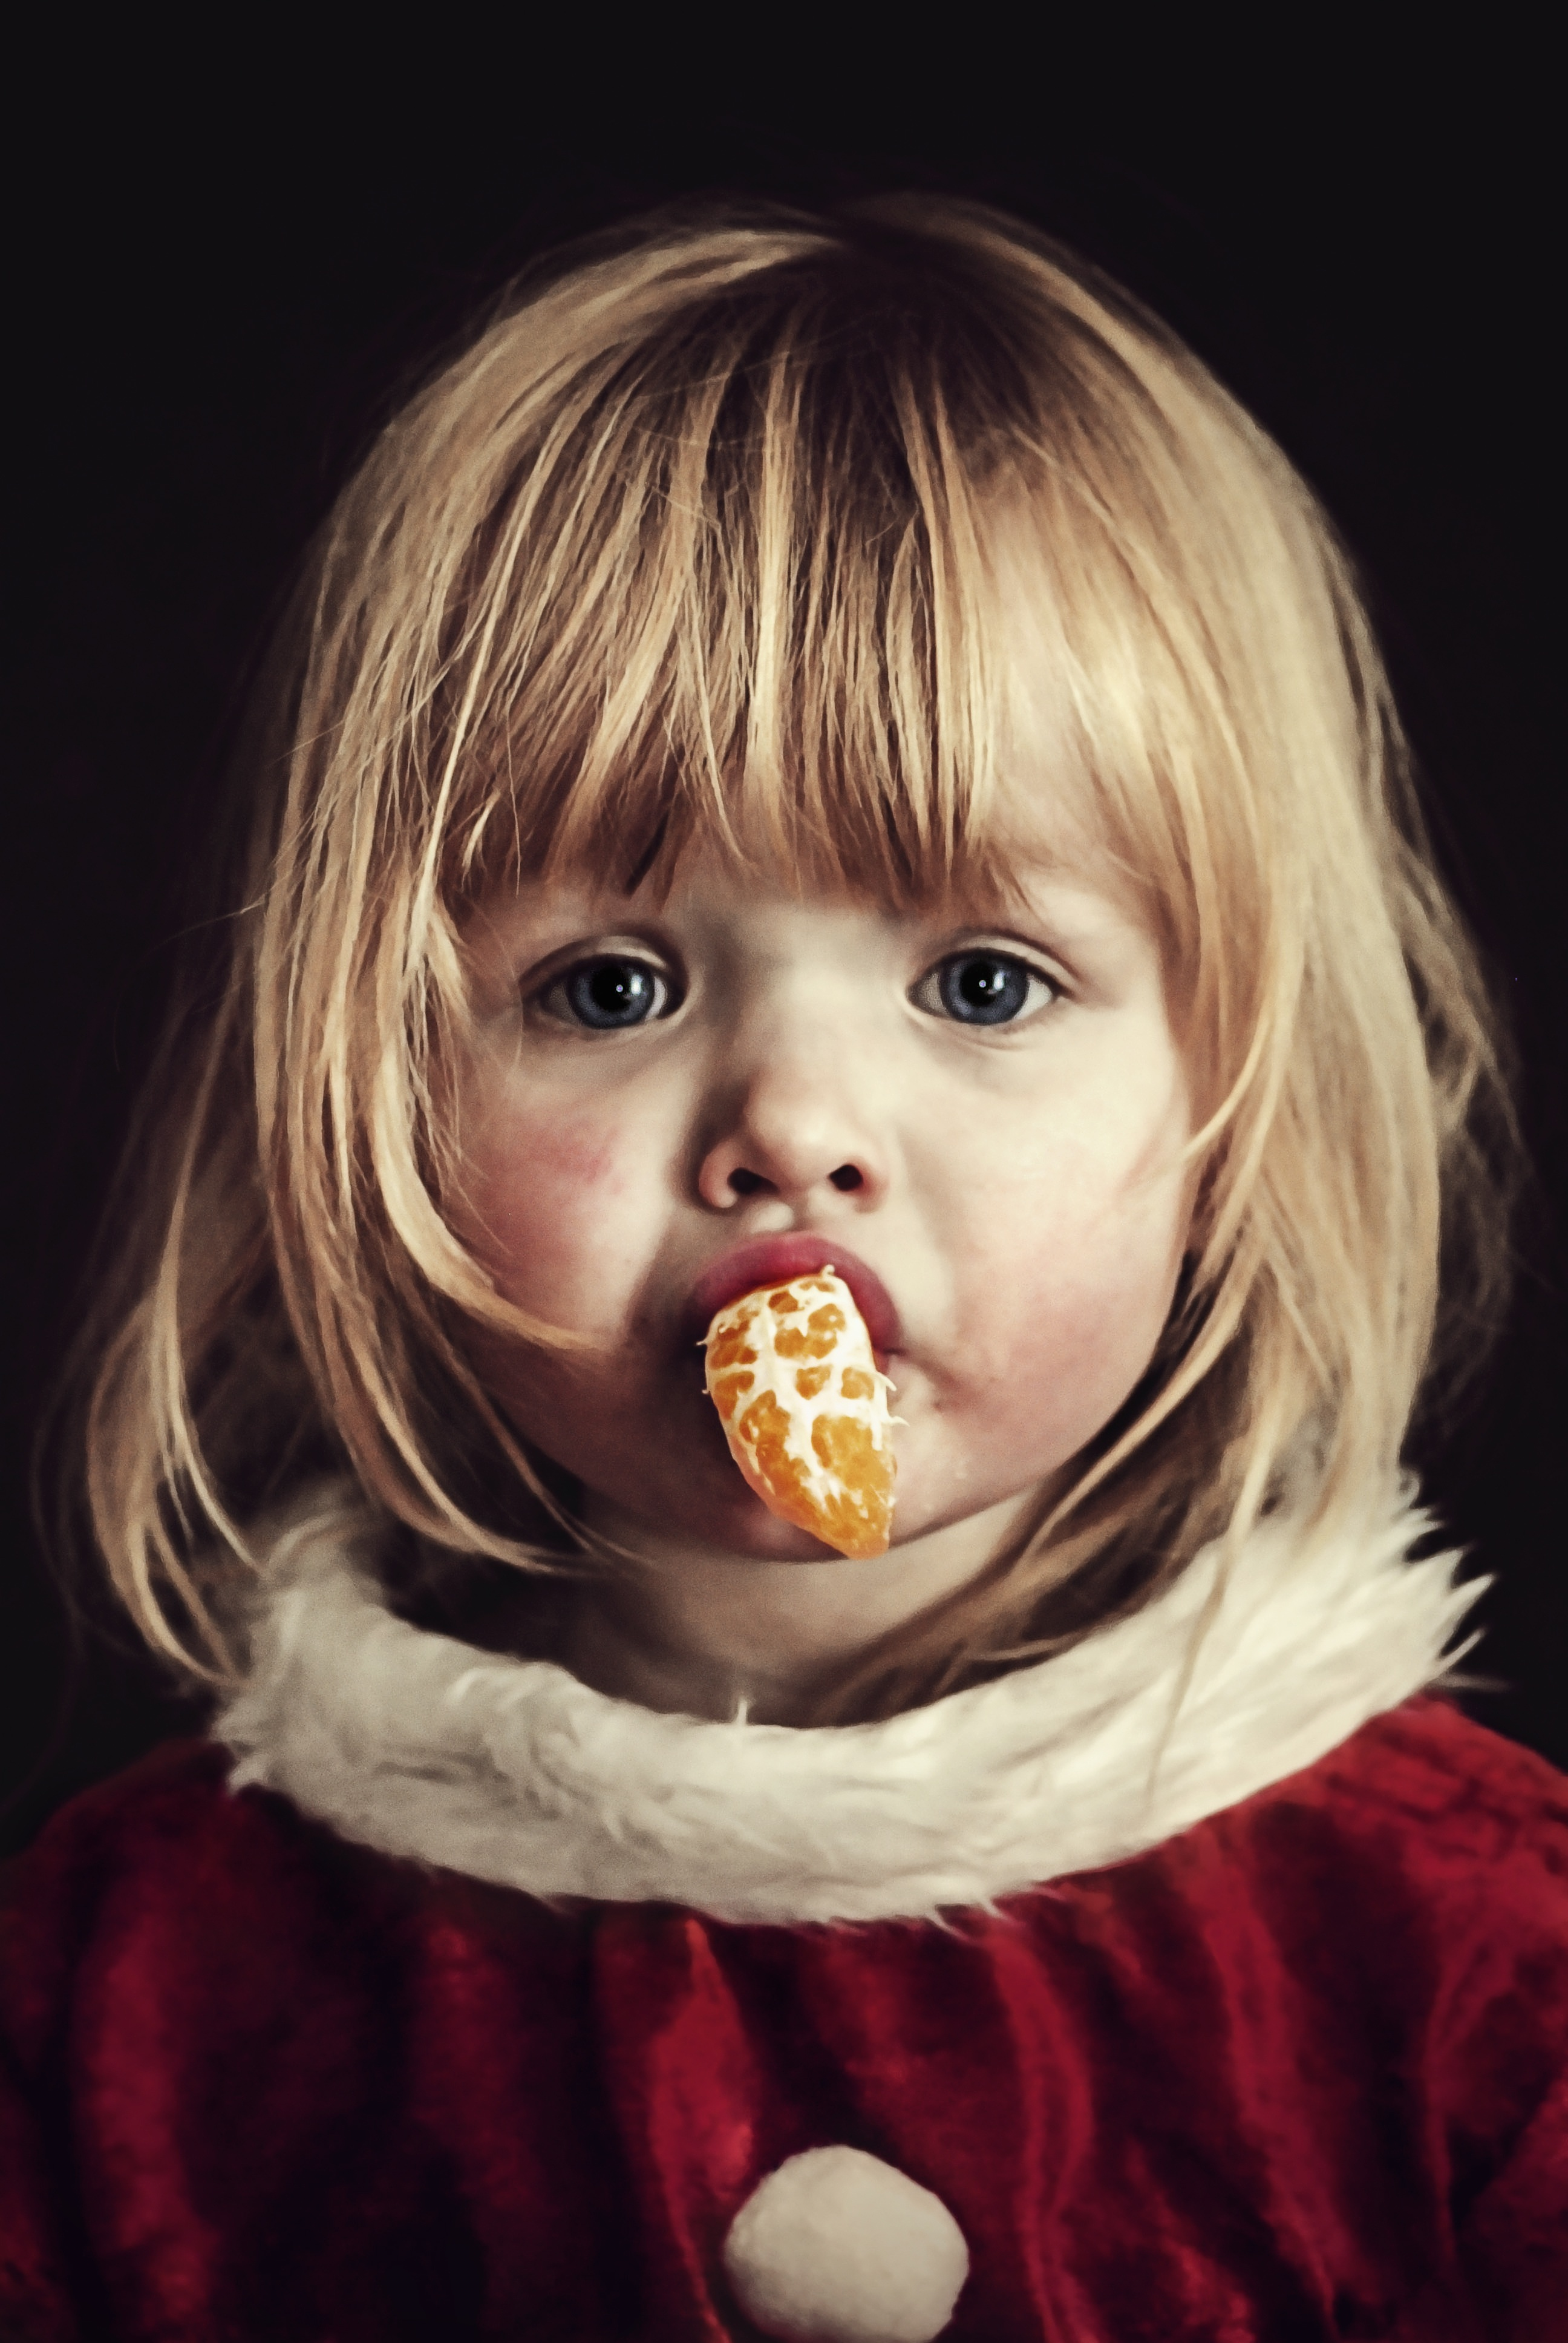 Cute Little Girl, Adorable, Child, Cute, Eating, HQ Photo